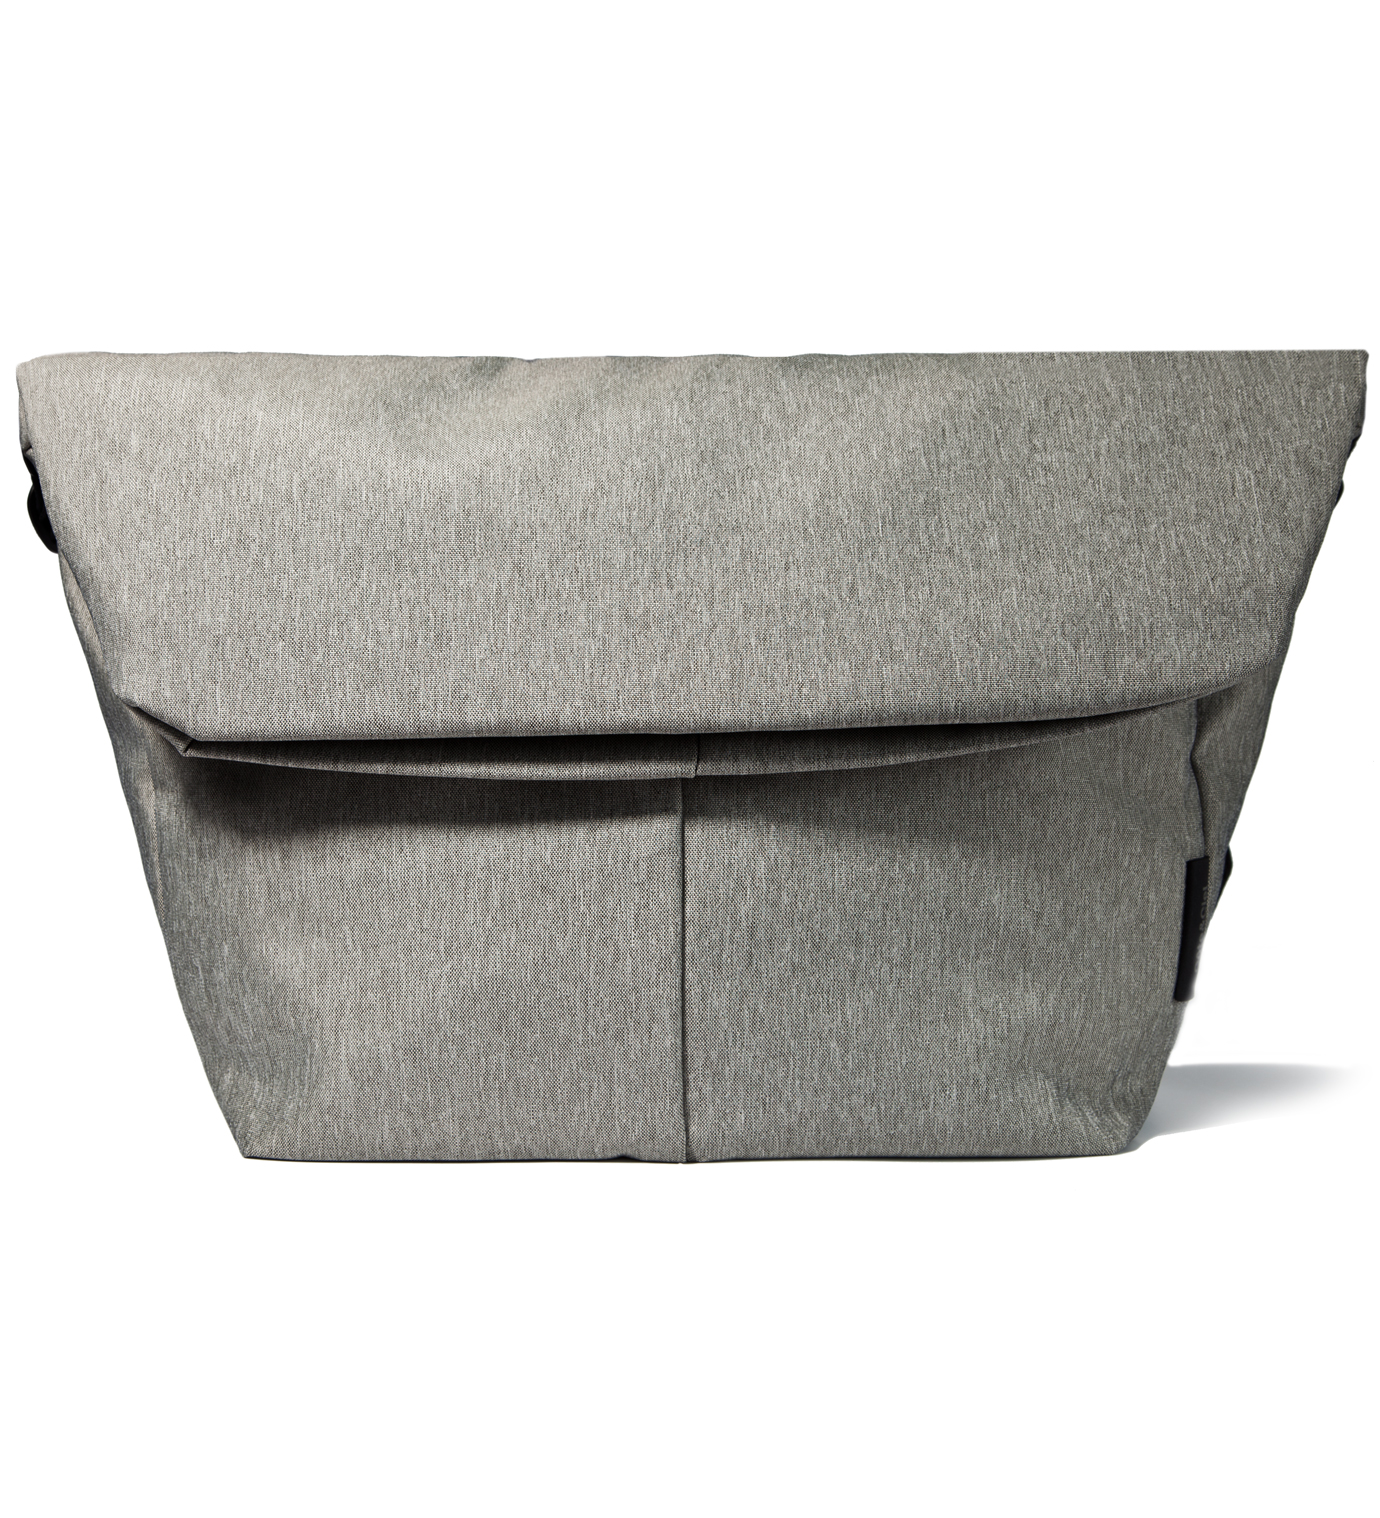 "Côte&Ciel Grey Melange 15"" Laptop Messenger Bag"